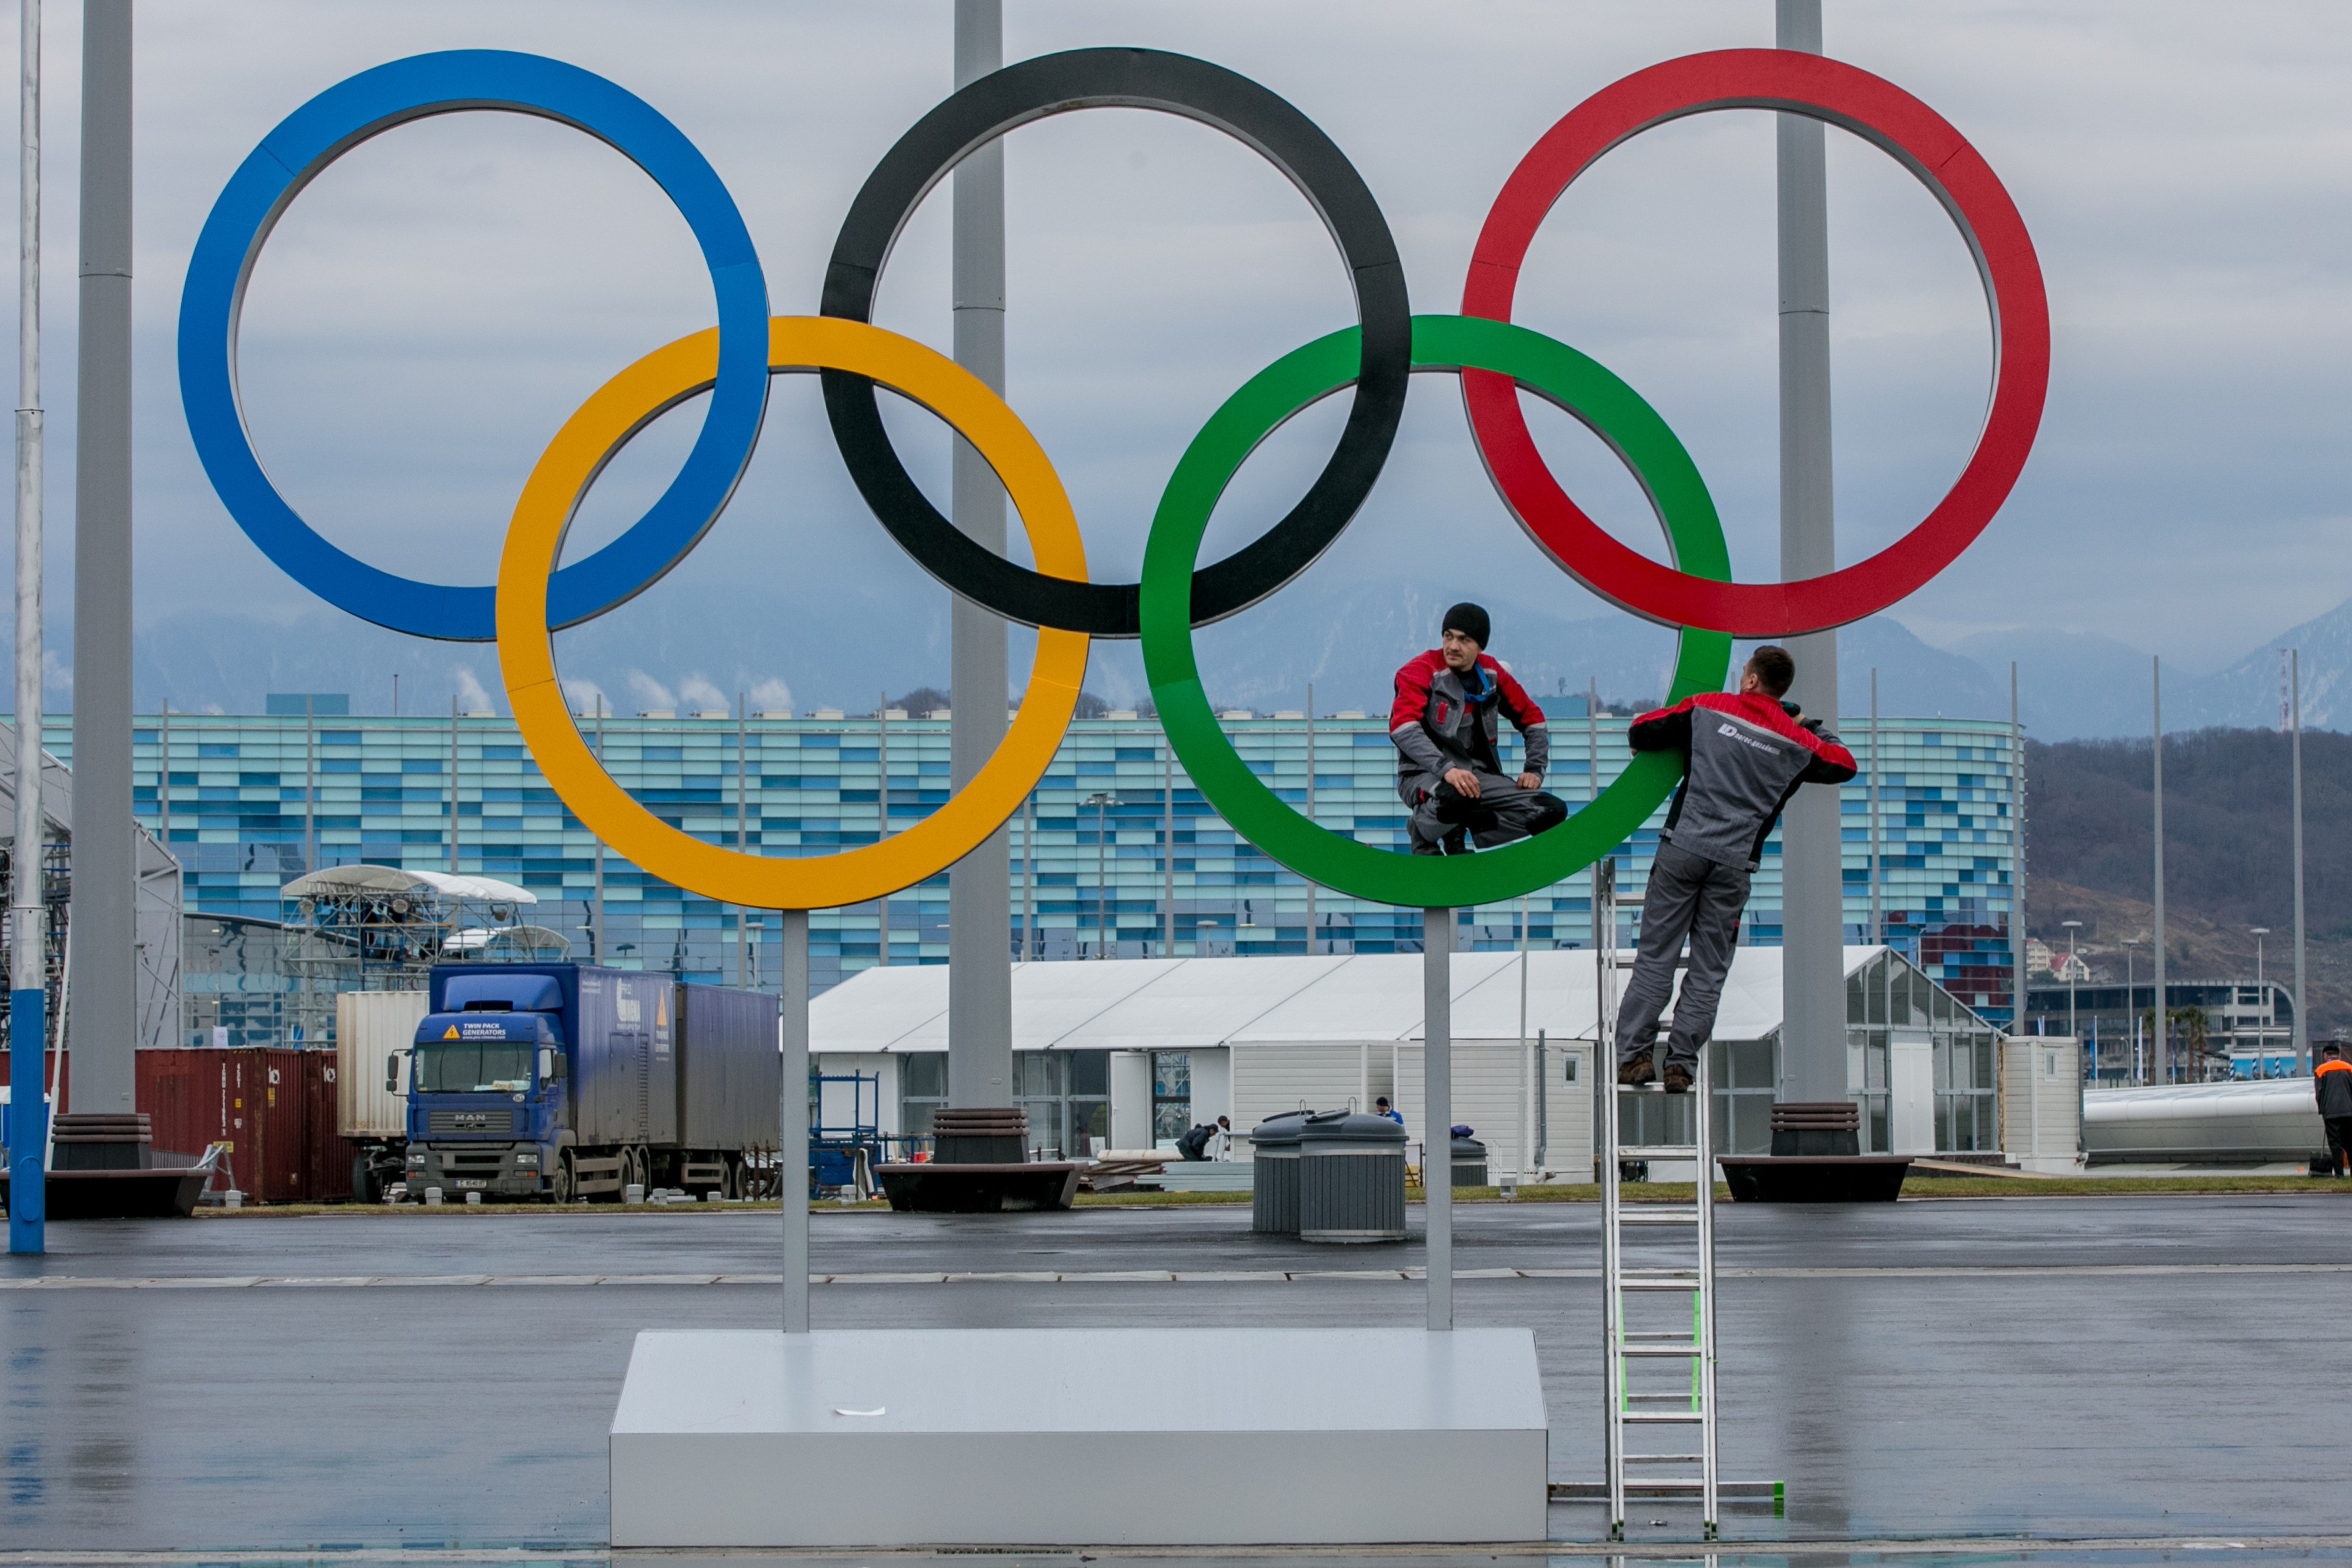 Olympics committee will consider reinstating baseball for 2020 Games